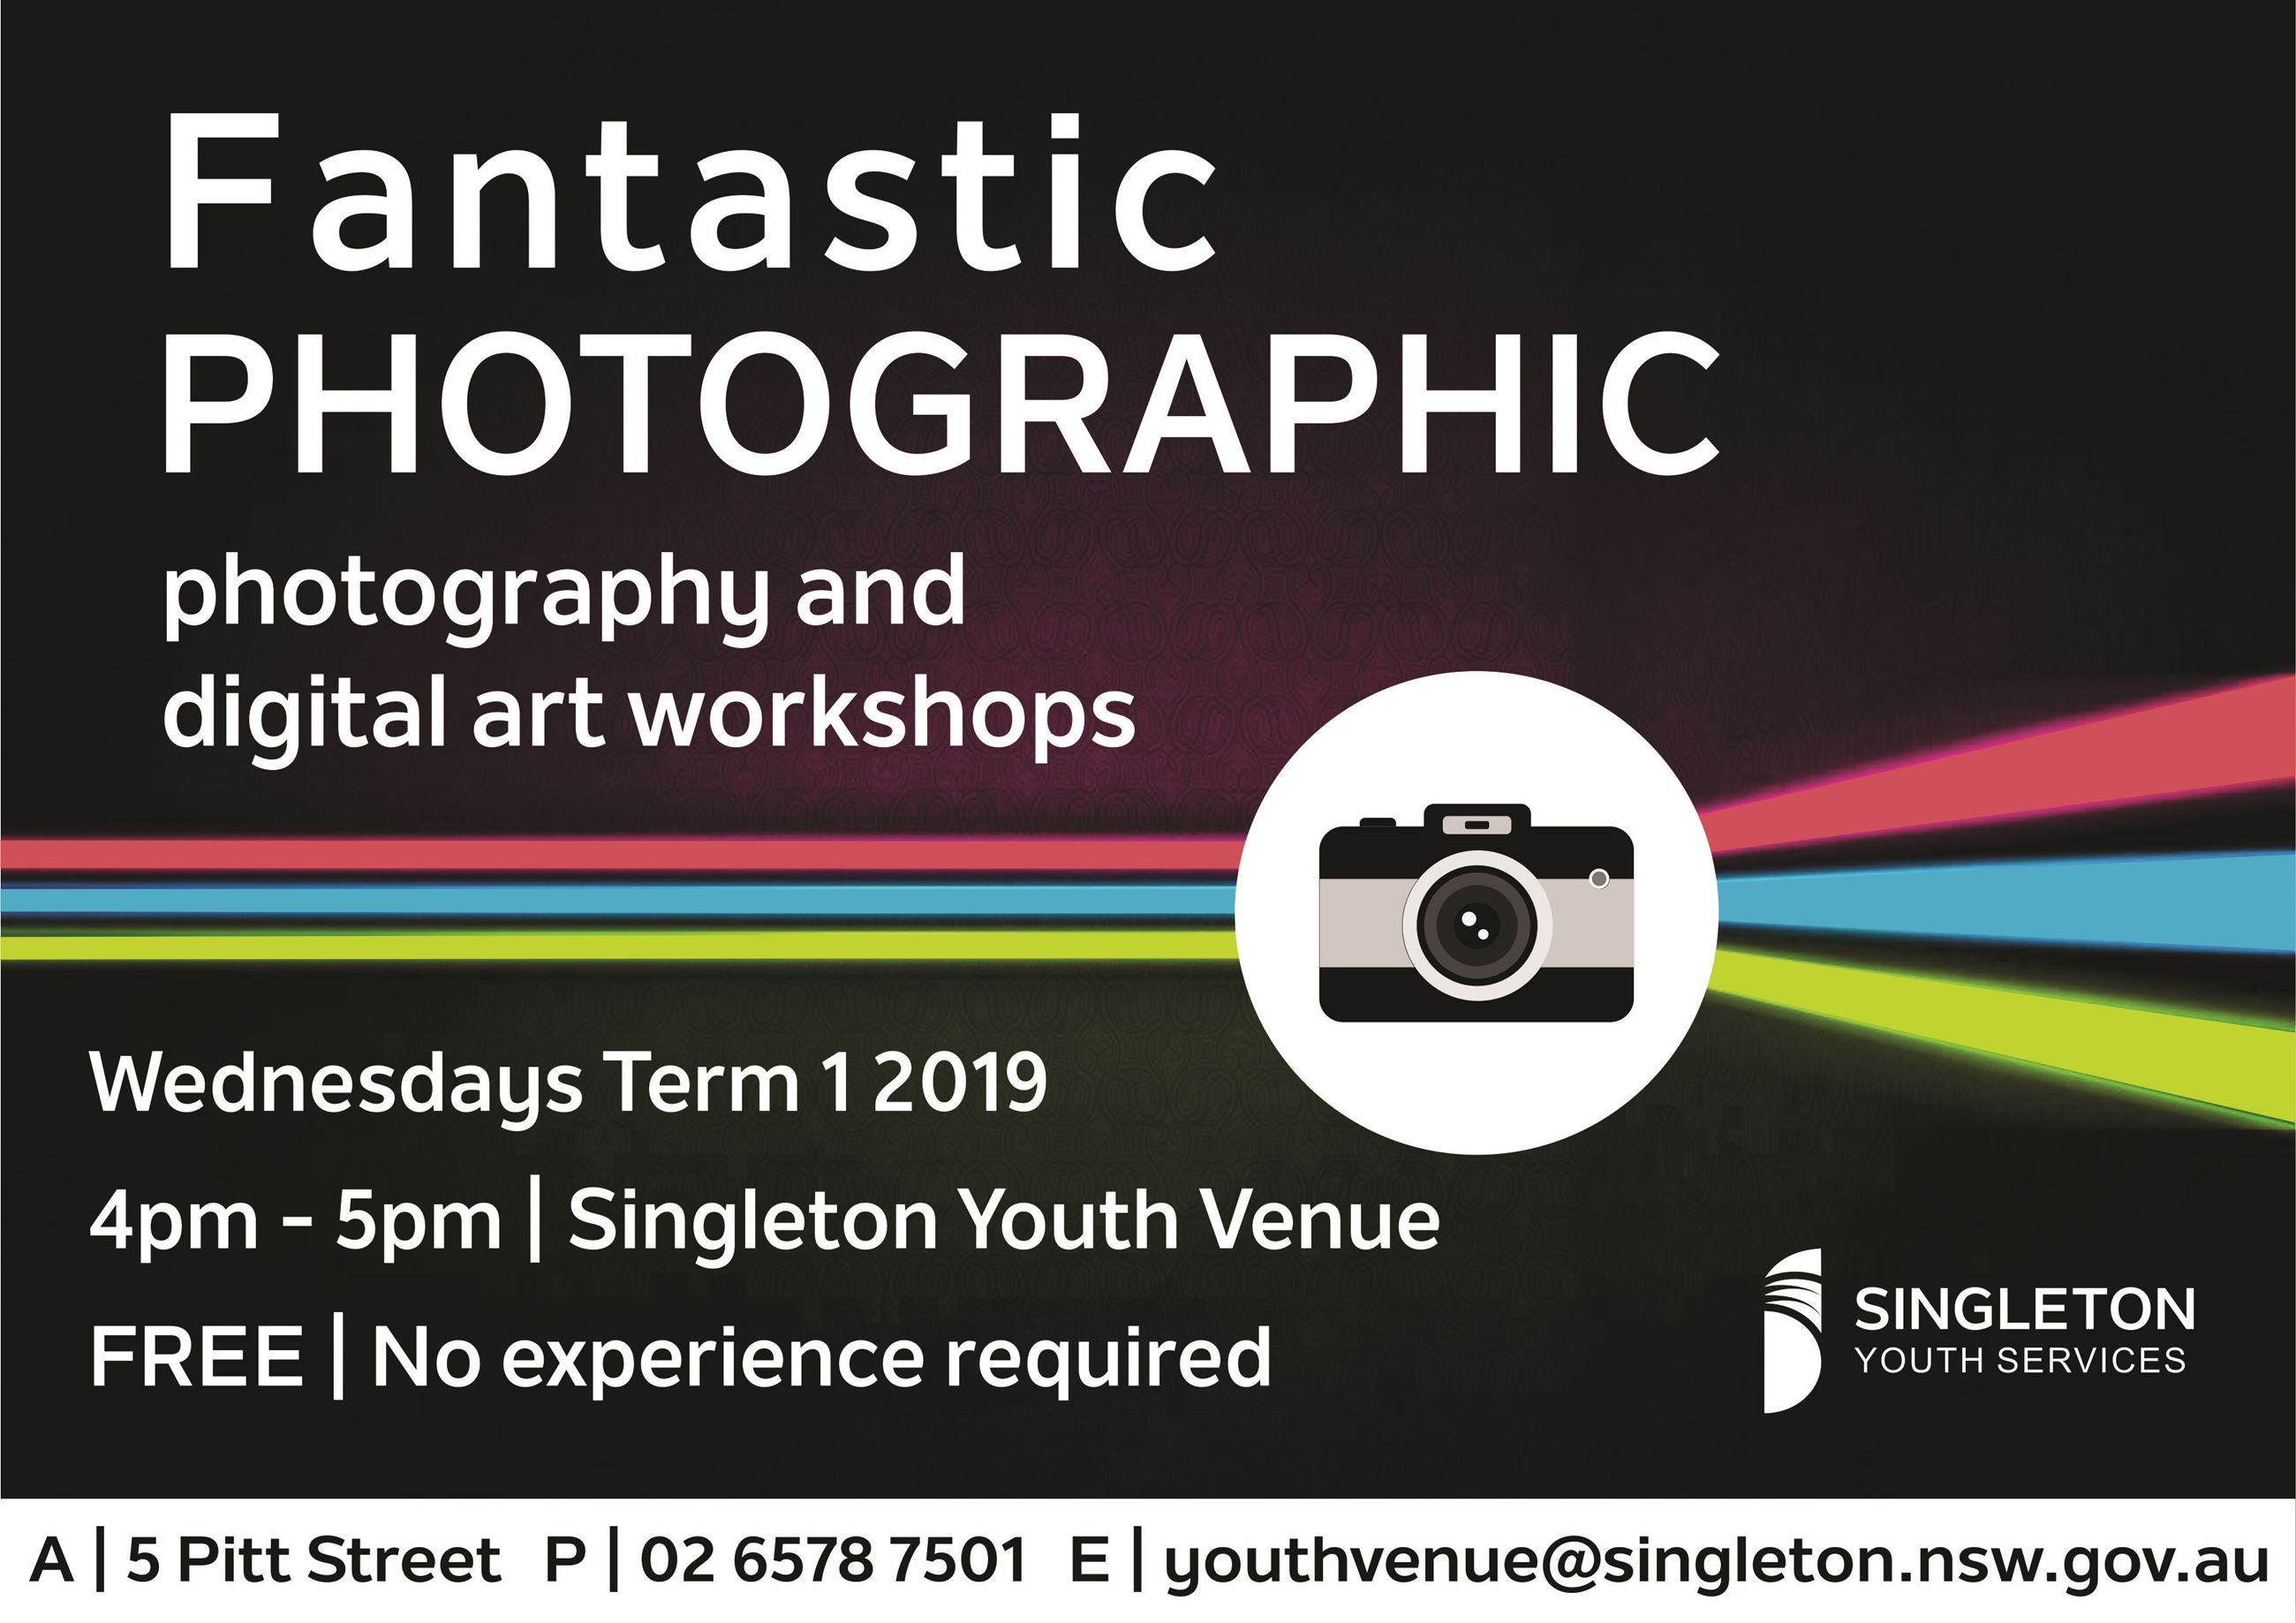 FantasticPhotographic Term 1 2019 - Flyer